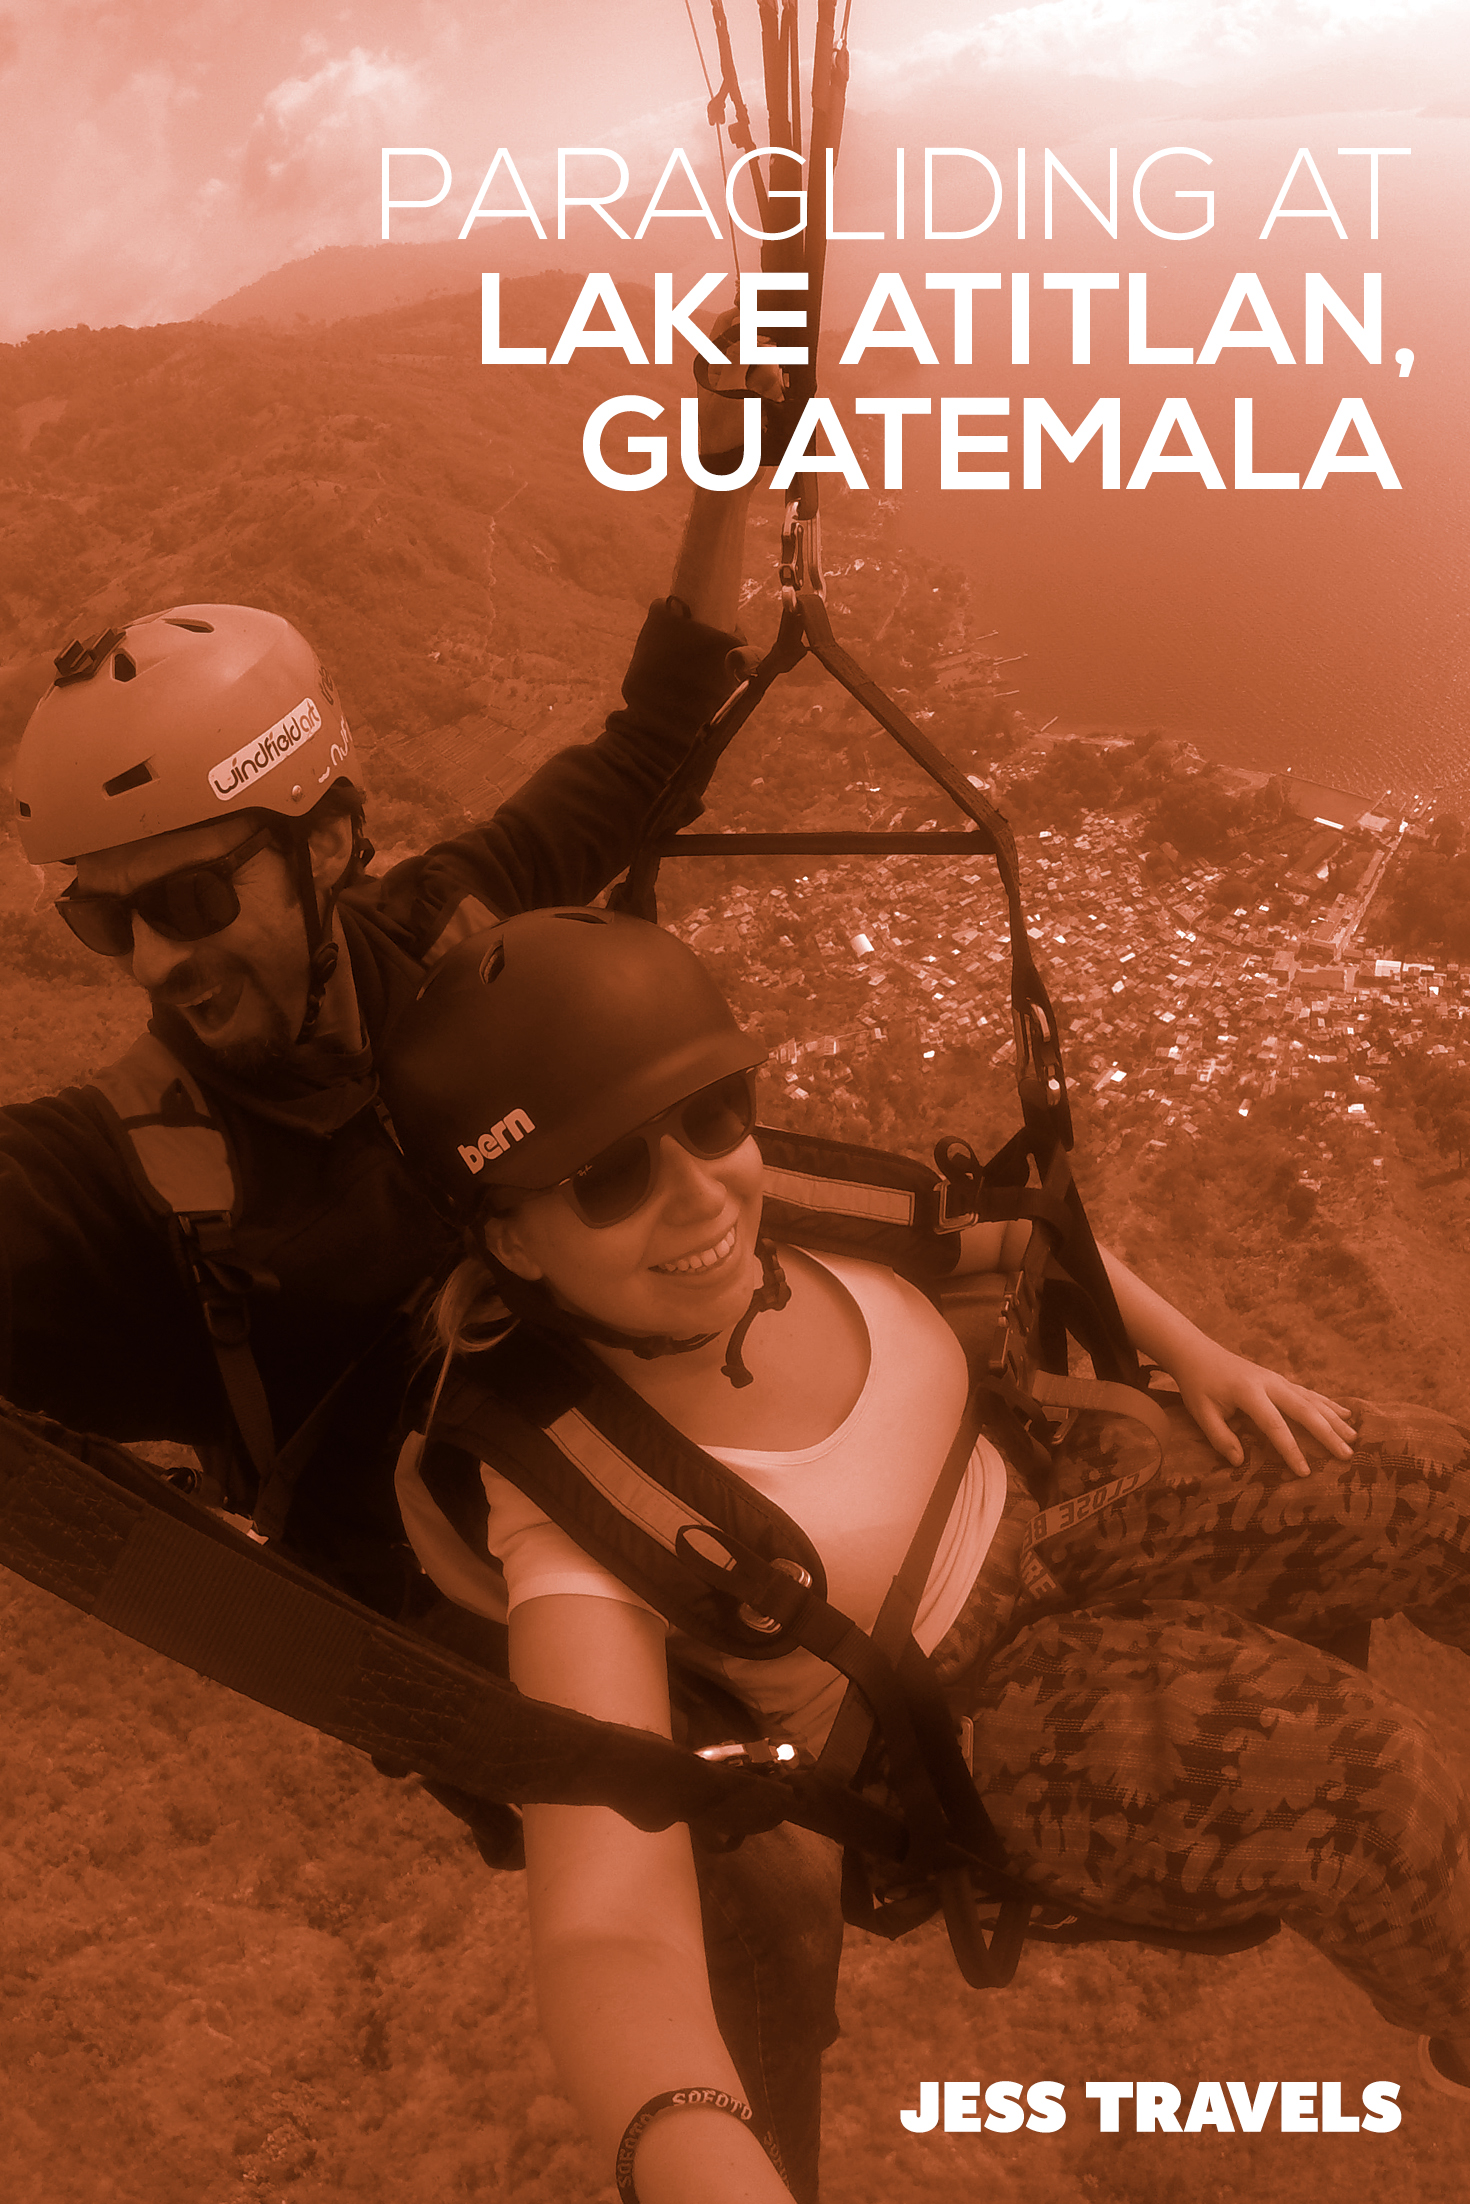 Paragliding Lake Atitlan in Guatemala . How to go paragliding in Guatemala near the Panajachel region of Lake Atitilan. #paragliding #guatemalatravel #centralamerica